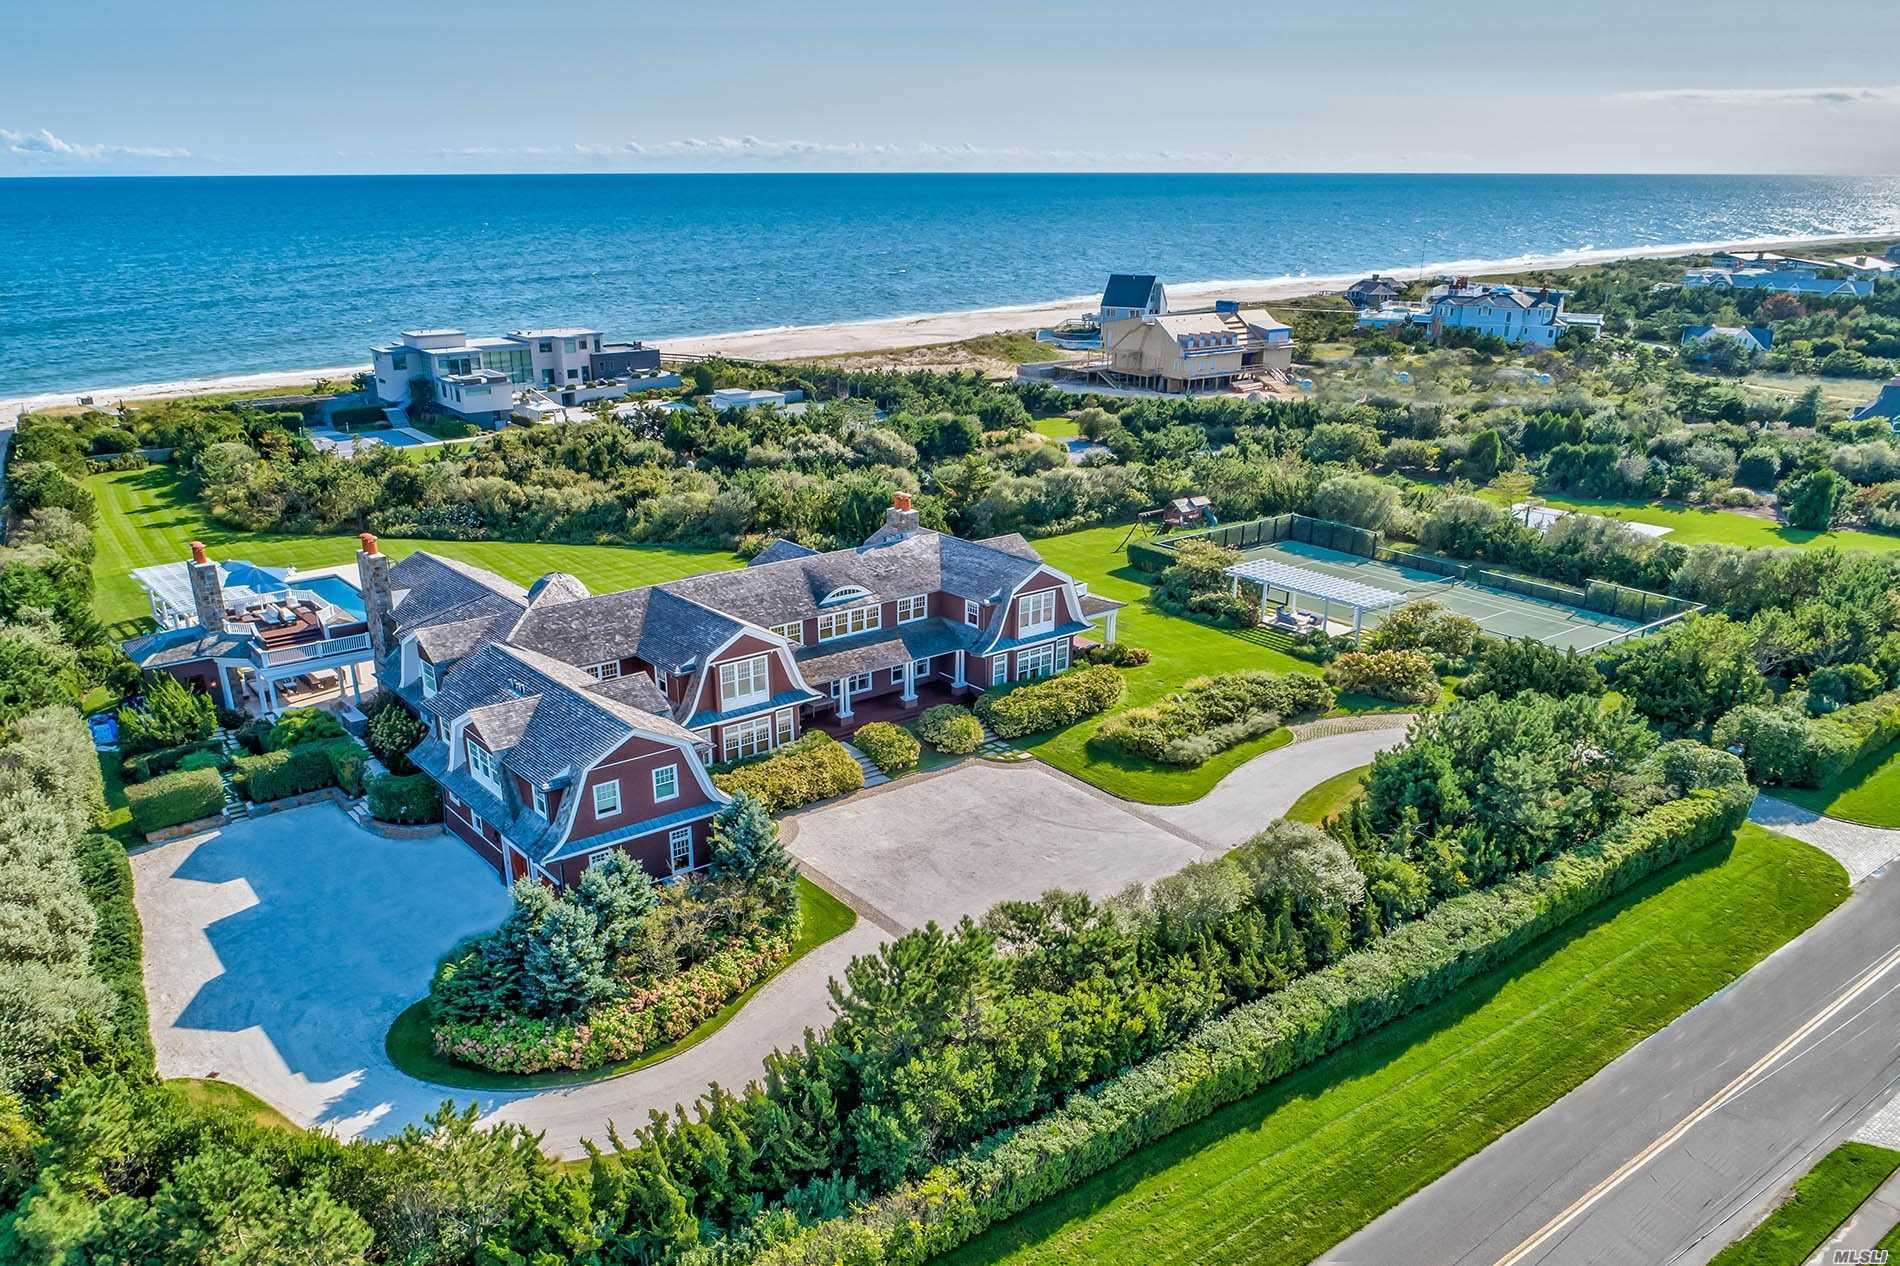 The best of both worlds. Sand Castle is a quiet Quogue Estate with views and access to your very own oceanfront, plus bay access with 3 deeded boat slips. No detail has been missed throughout the living areas, gourmet Chef's kitchen, incredible master suite with his and hers baths and closets, gym with bath and multiple balconies looking out to the ocean. Every amenity including a heated gunite pool with retractable cover, outdoor kitchen and living areas and all-weather tennis court.